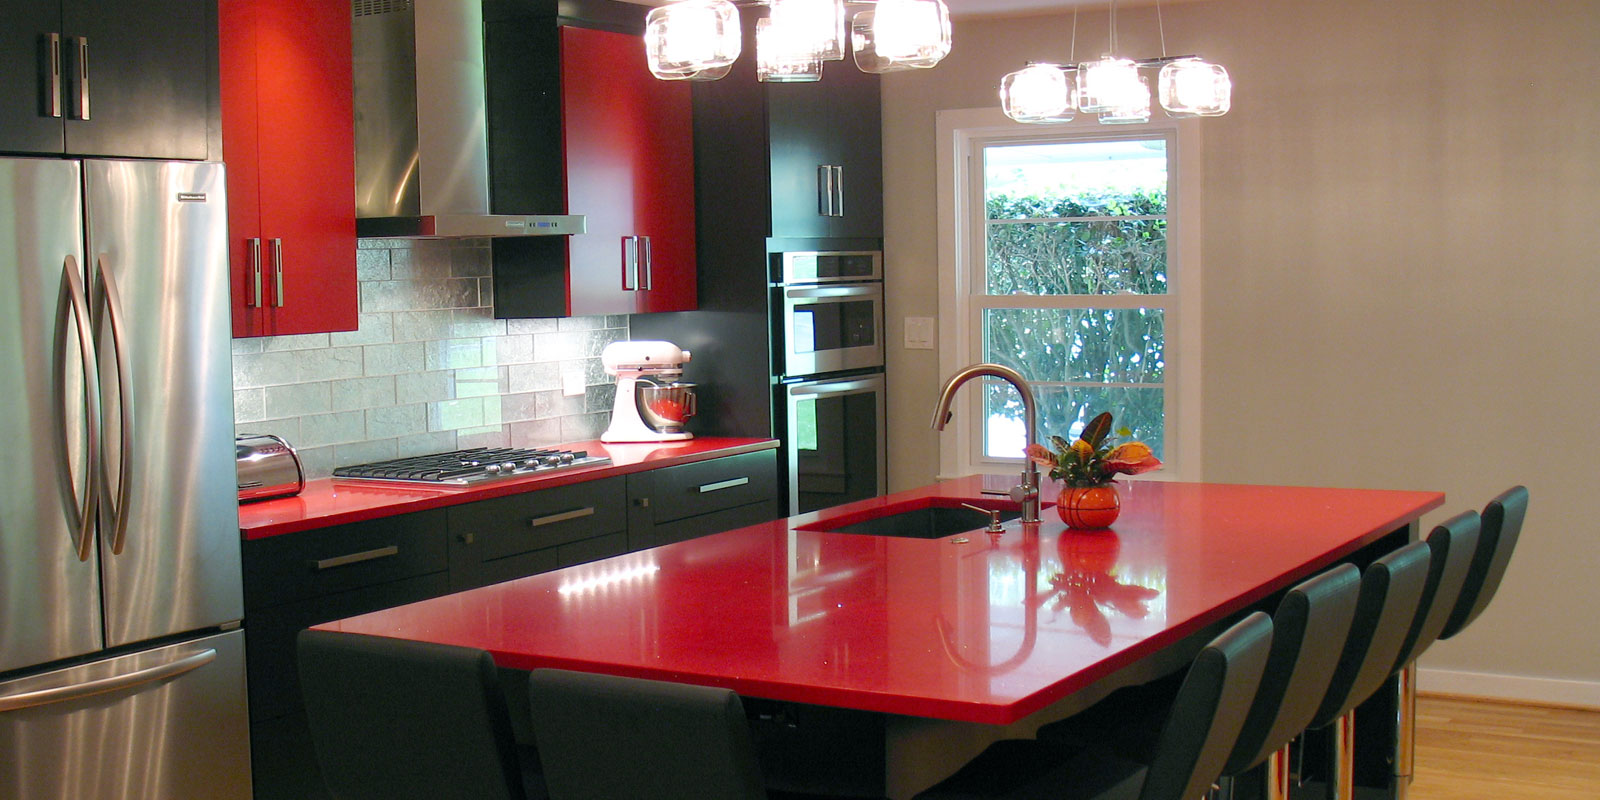 Red Intermezzo Kitchen Countertop